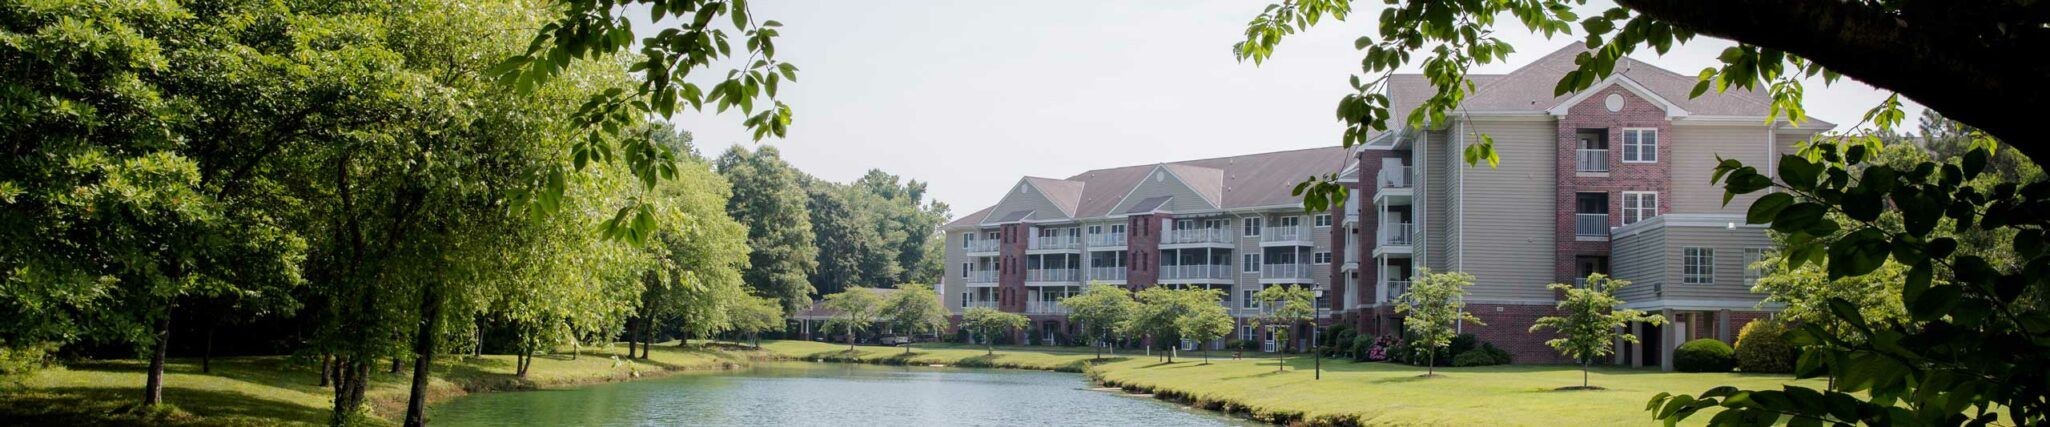 The senior living buildings